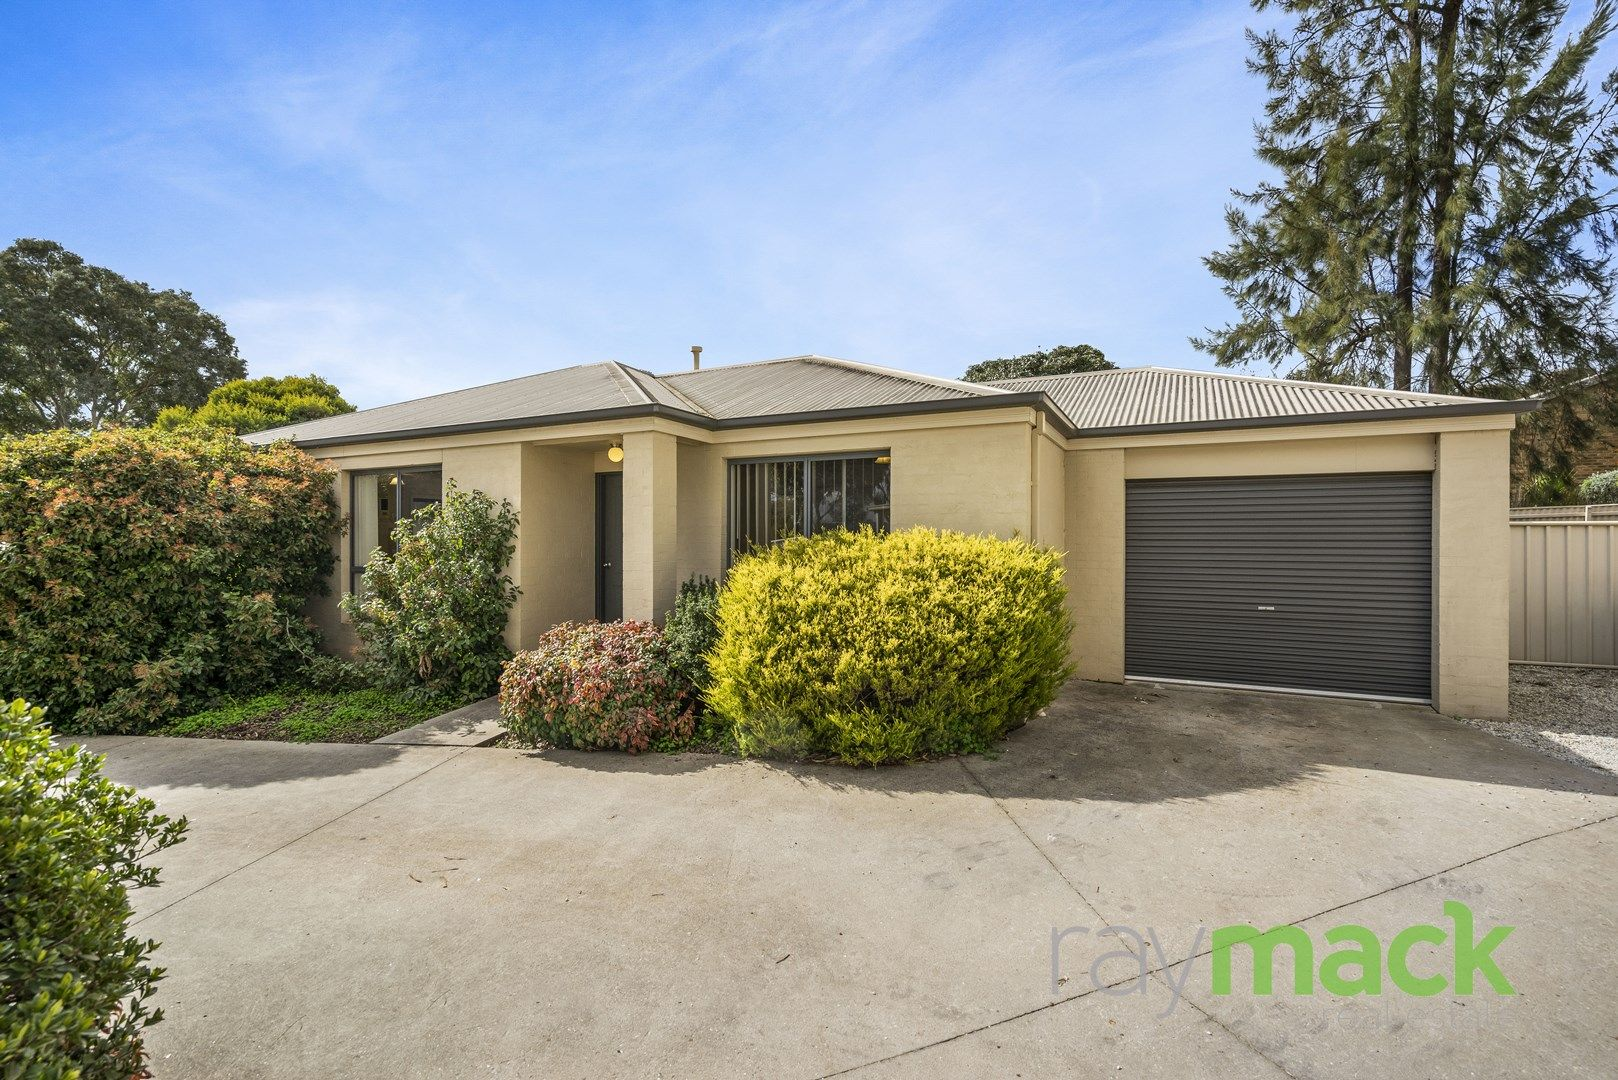 3/25 Tallowwood Street, Thurgoona NSW 2640, Image 0